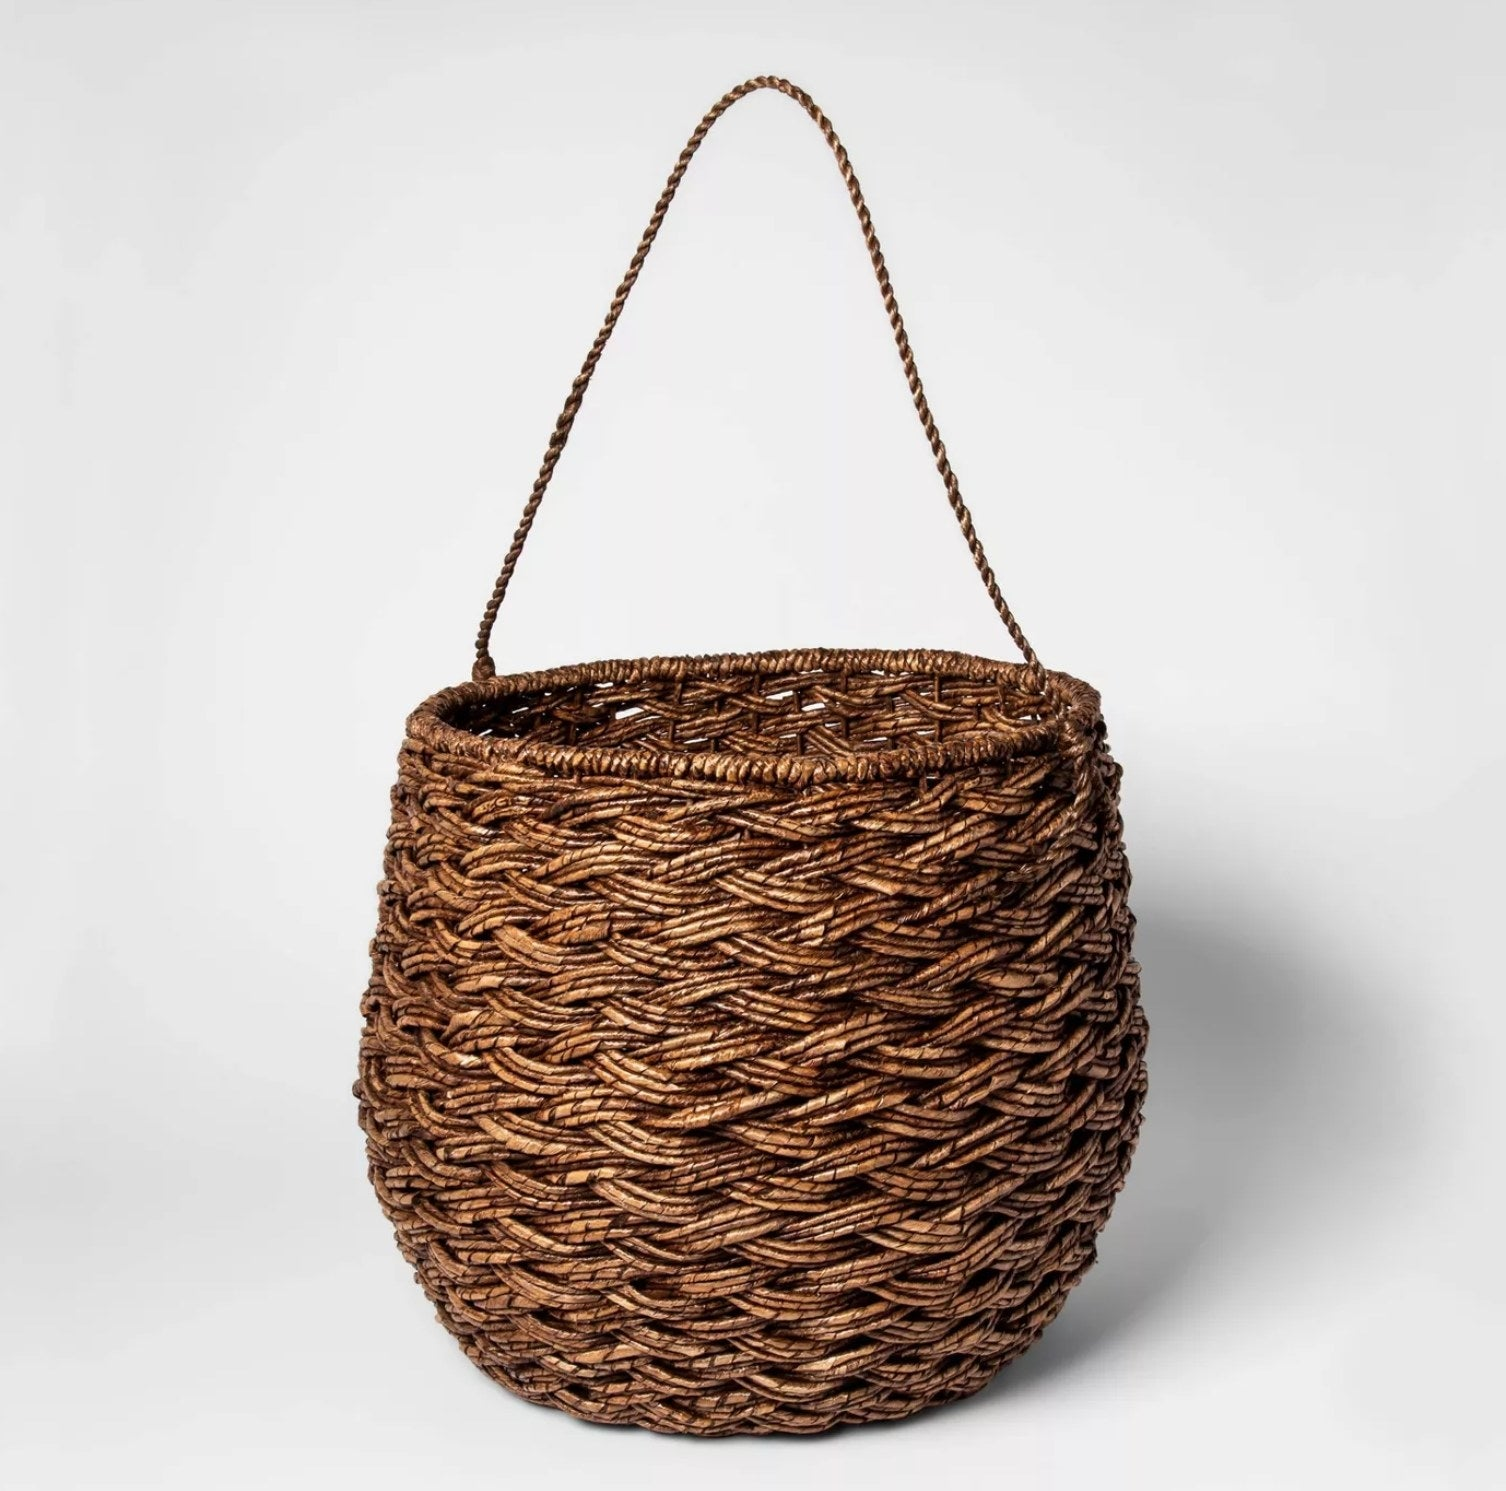 The rounded brown wooven basket